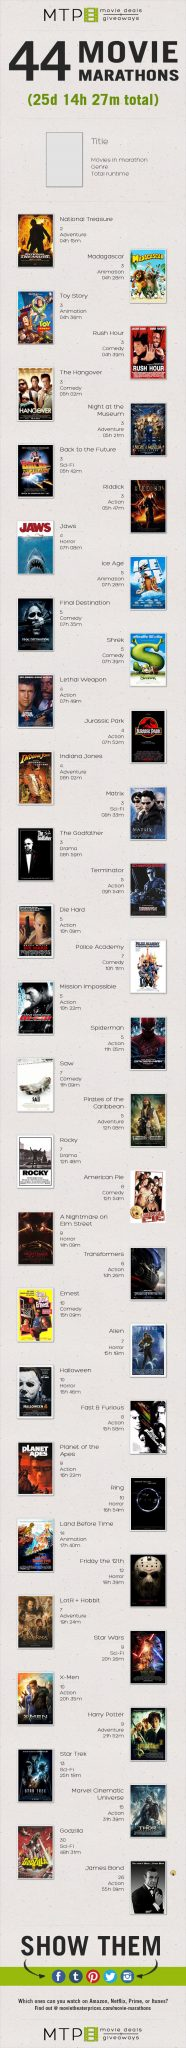 Movie Marathons Infographic